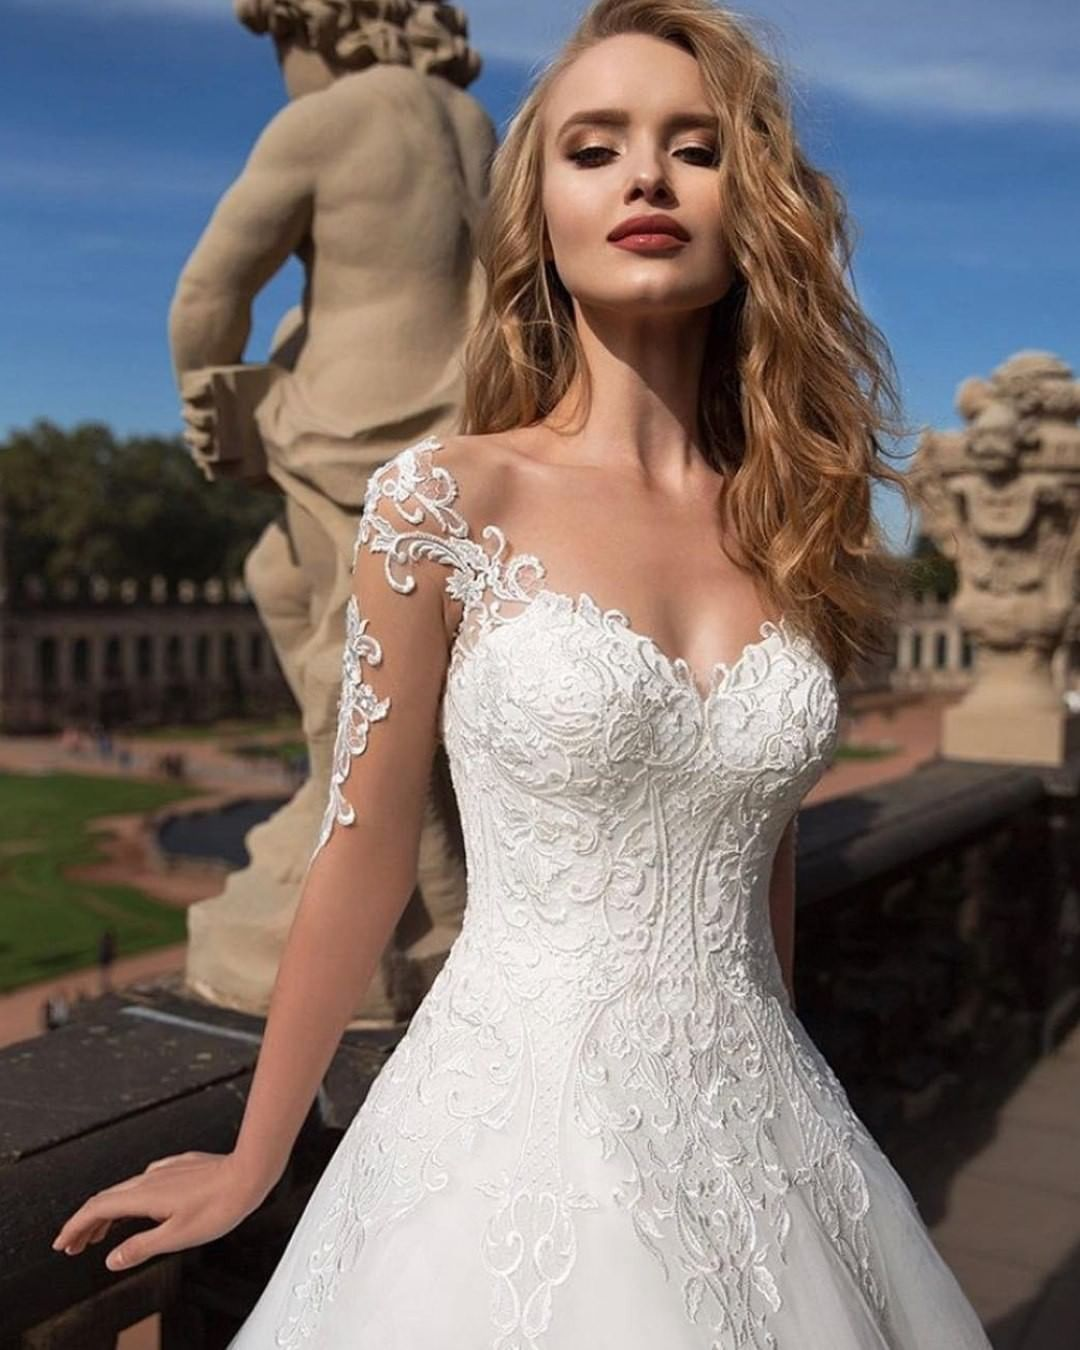 Wedding Dresses Gallery On Instagram Decision Decision Which One Ladies 1 2 3 4 5 Ball Gowns Wedding Navy Wedding Guest Dresses Wedding Dresses Lace [ 1350 x 1080 Pixel ]